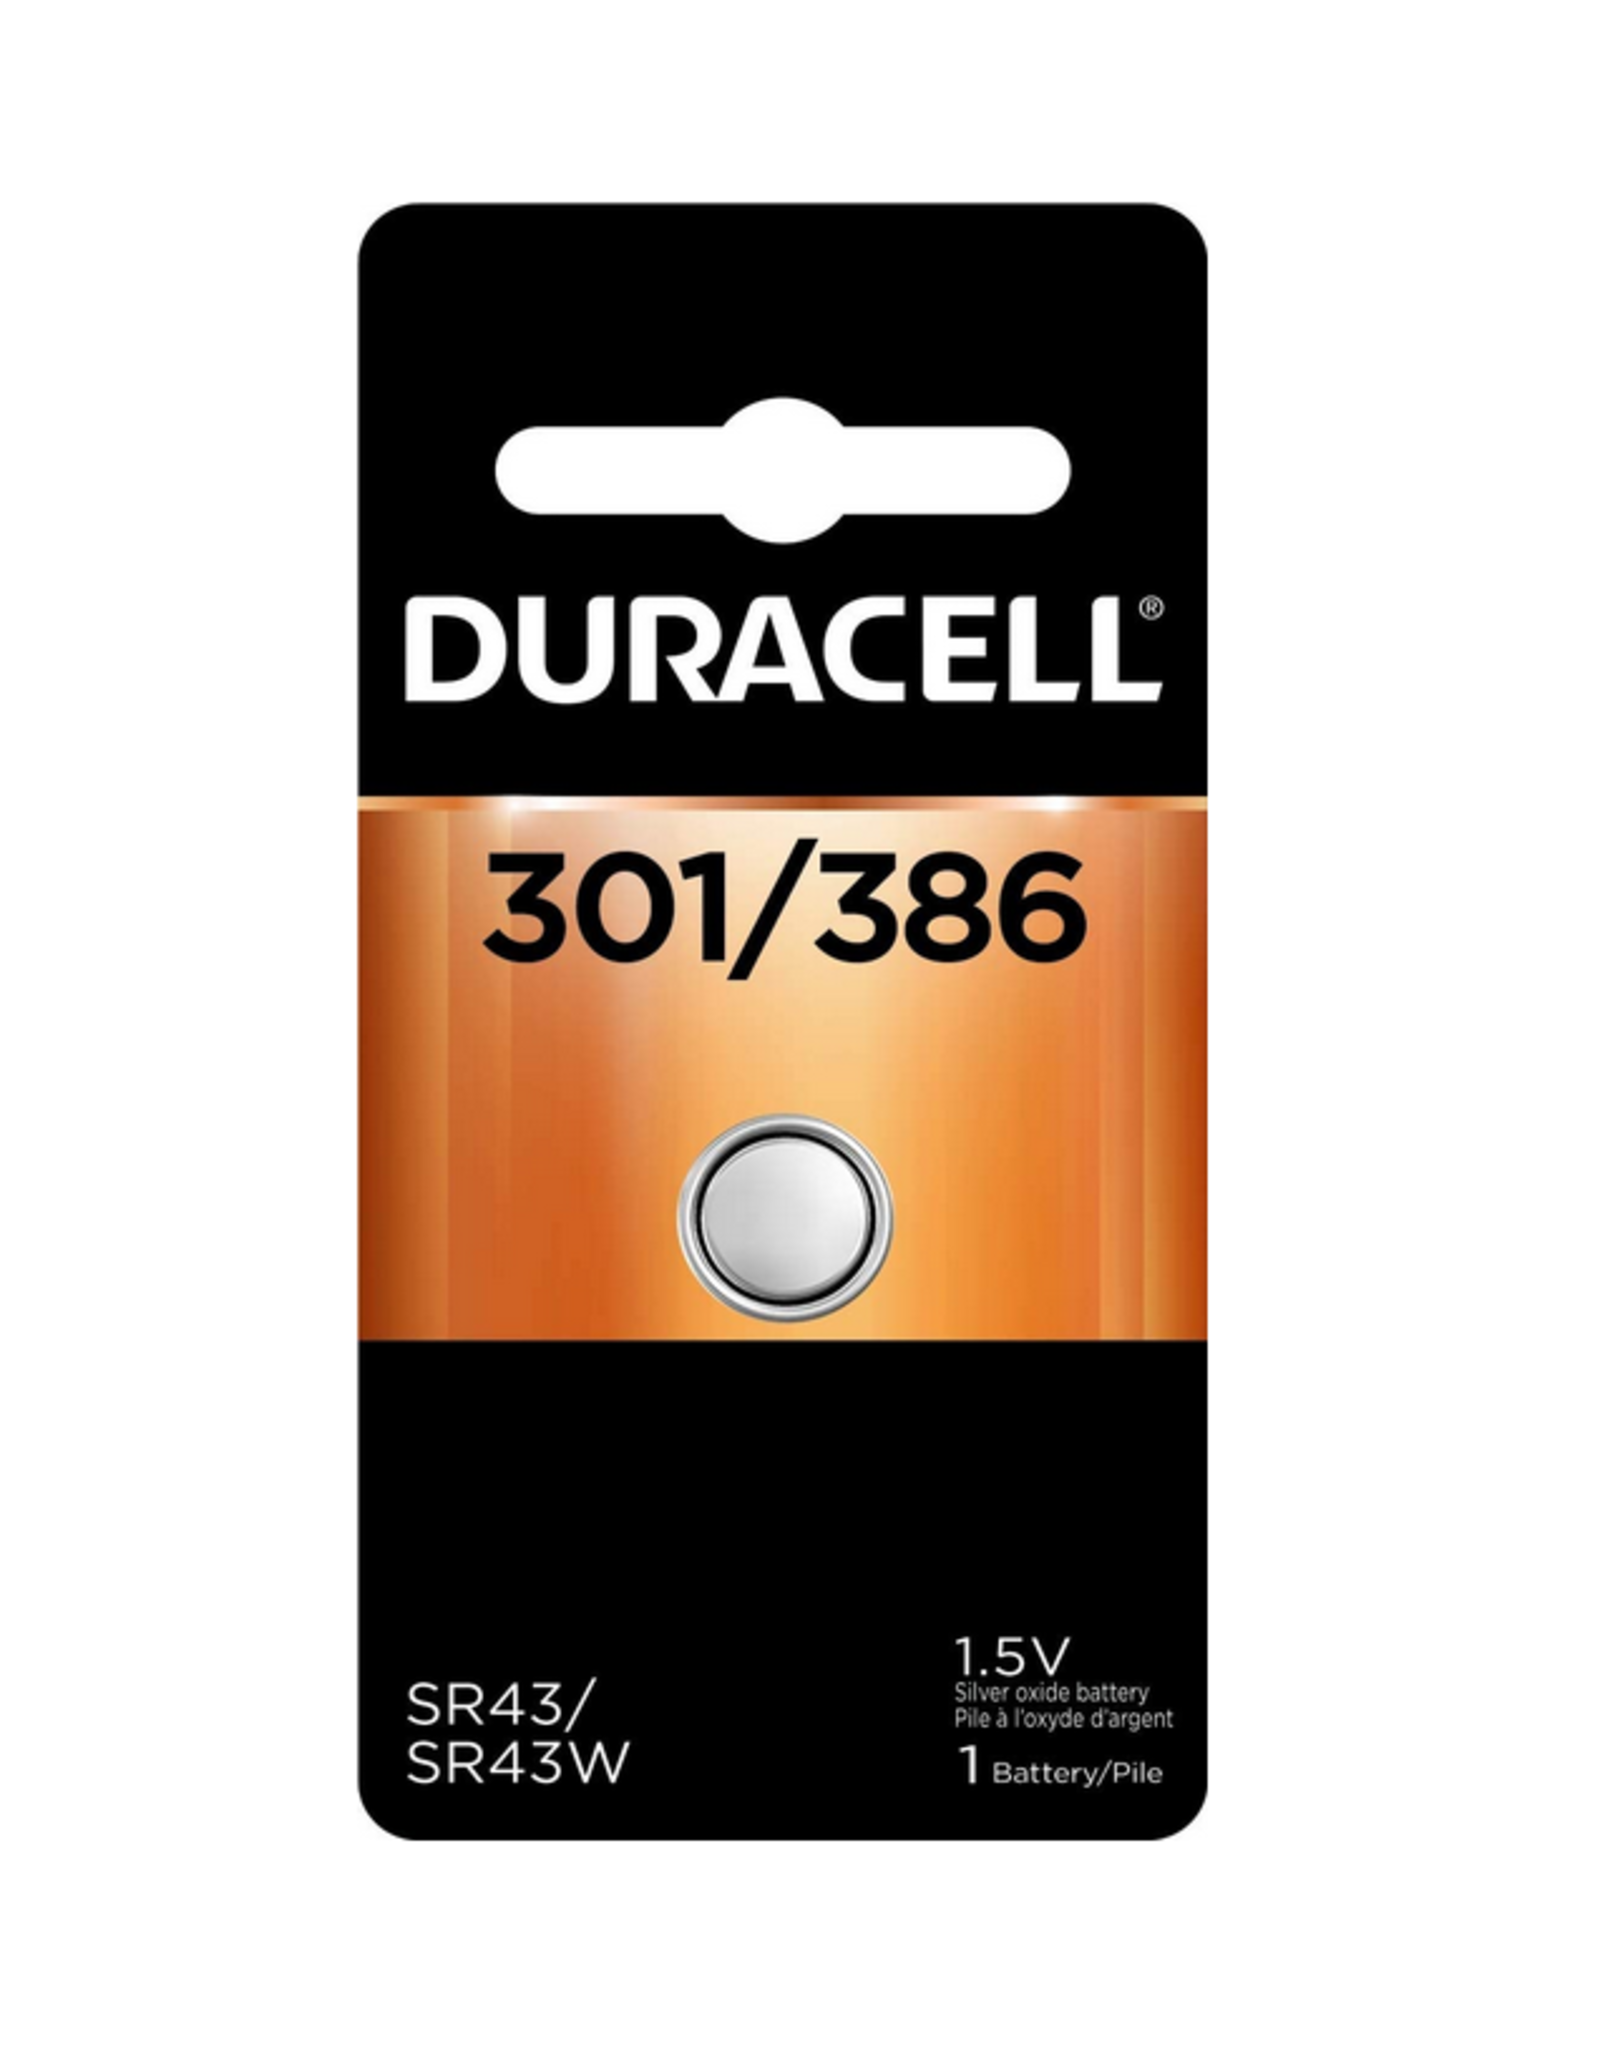 Duracell Canada Inc. Duracell 301/386B 1.5V Silver Oxide Button Battery 1/pack